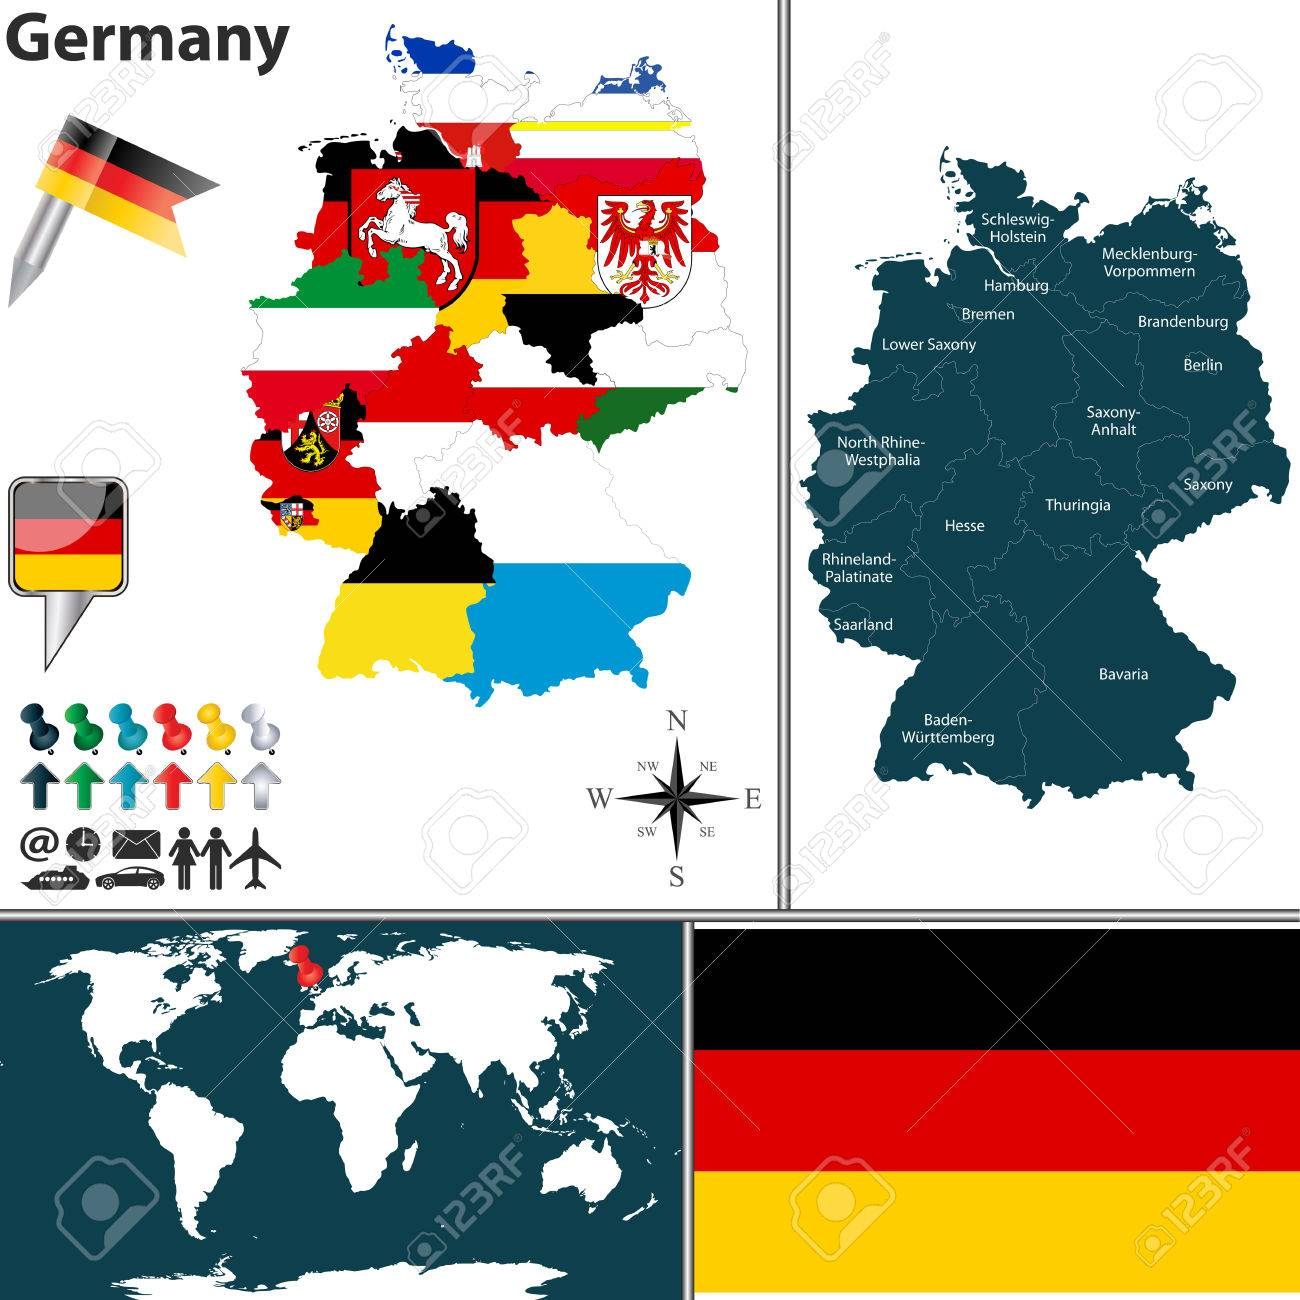 map of Germany with regions with flags and location on world.. Germany Location In World Map on germnay on a world map, germany country world map, germany on world map, emden germany map, germany physical map, europe map, english language world map, germany vegetation map, germany map world map, cuxhaven germany map,